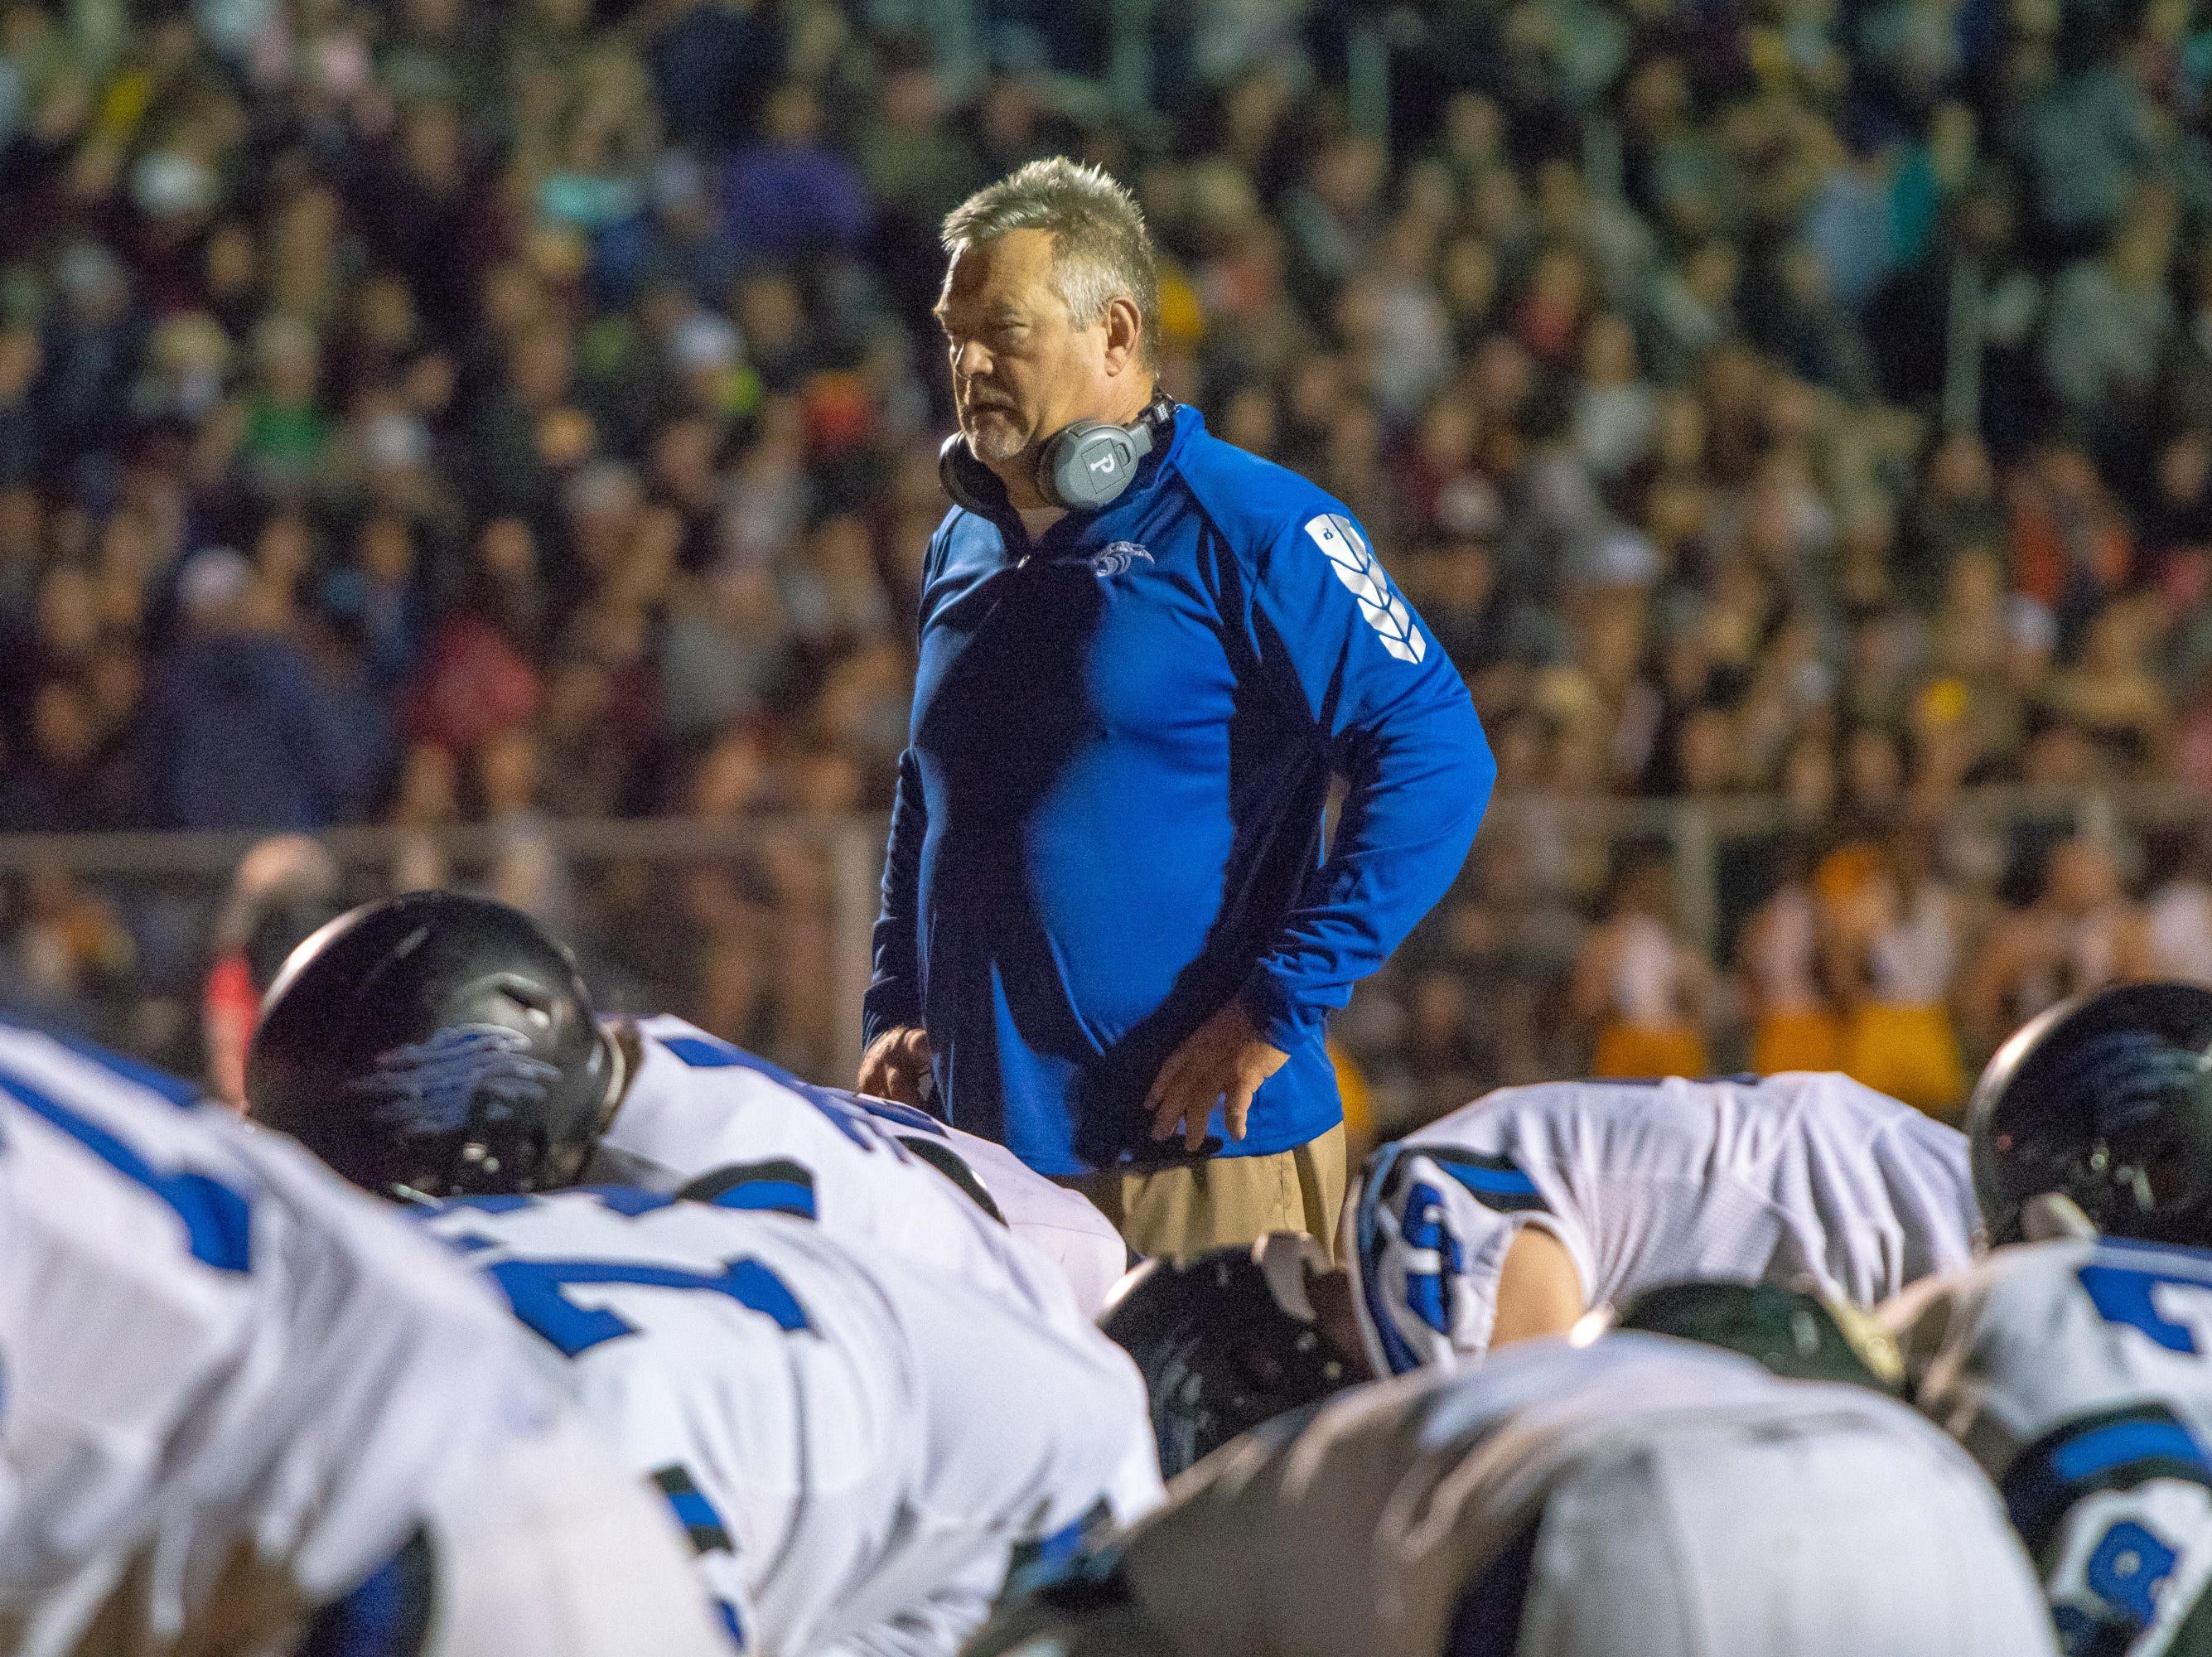 Sterlington's head coach Lee Doty watches over his team during warmups as the Iota Bulldogs take on the Sterlington Panthers in an LHSAA playoff football game on Friday, Nov. 30, 2018.